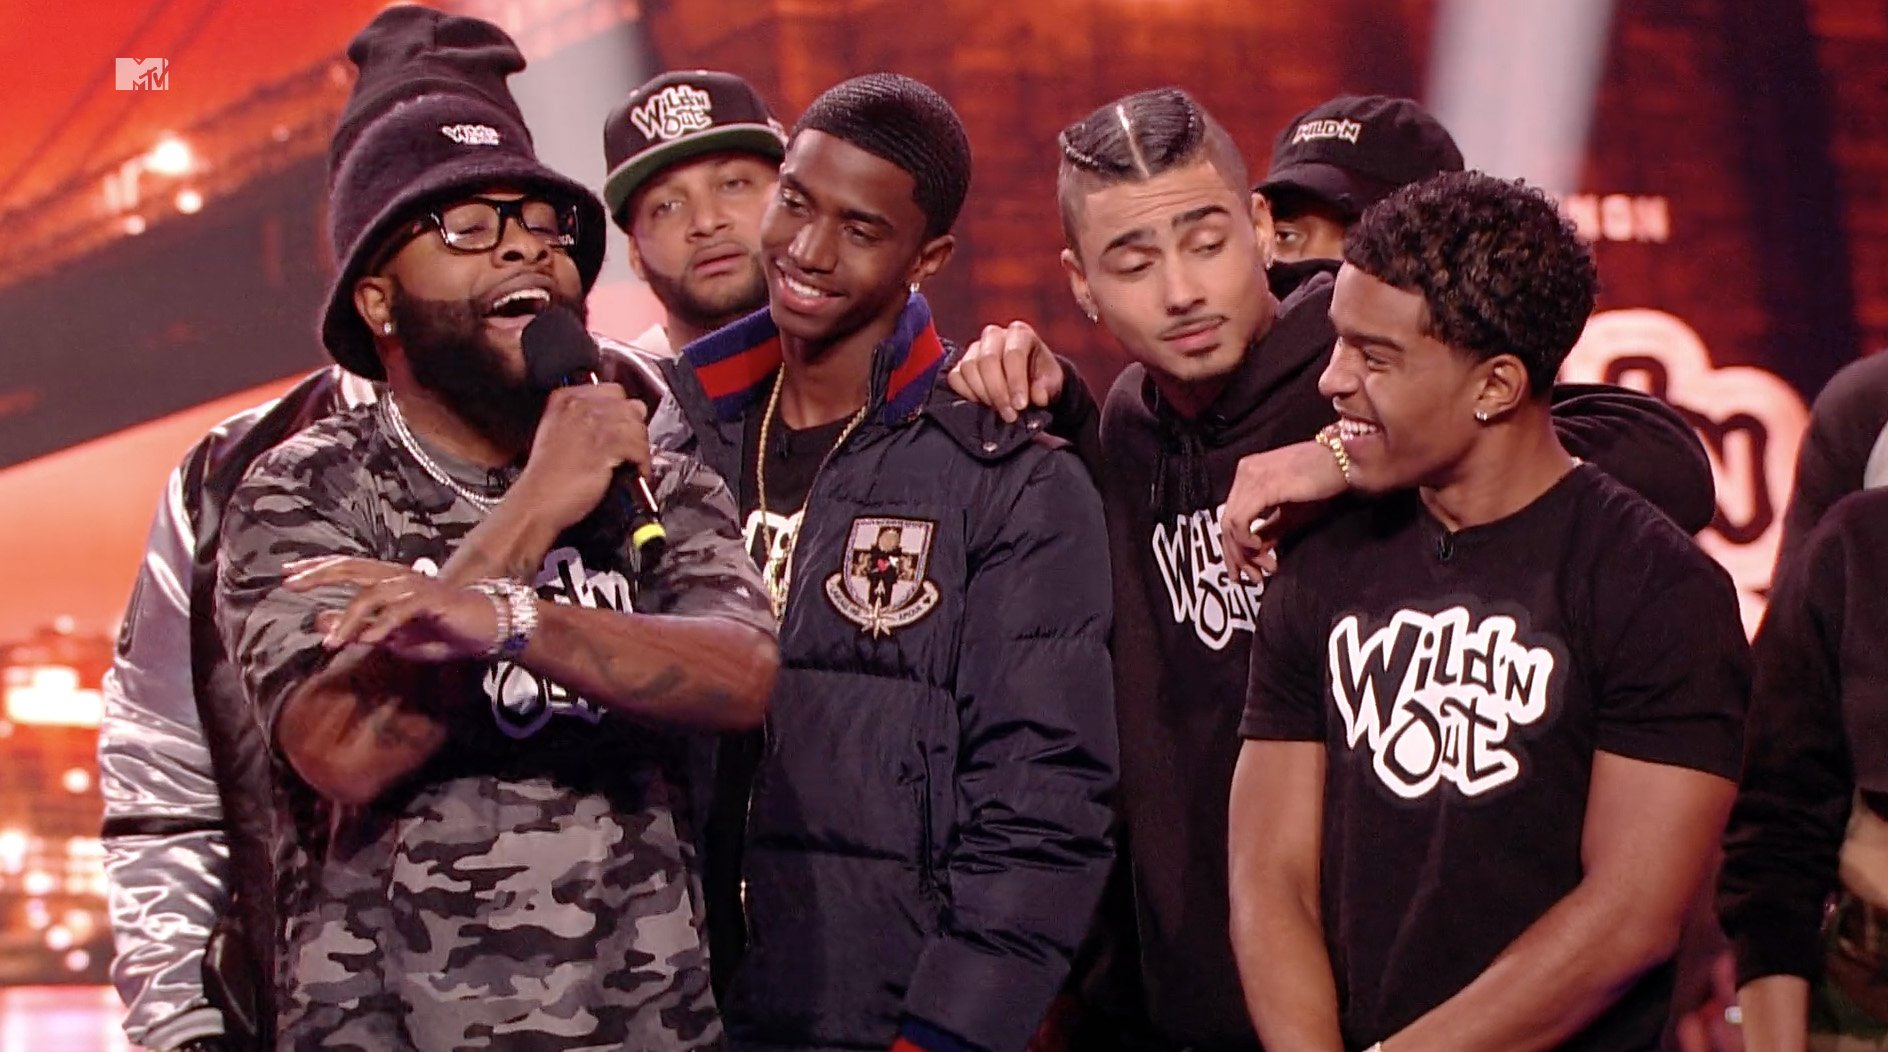 The Combs brothers are joining the @WildNOut crew tonight at 11/10c: https://t.co/ghzlFm0JOm https://t.co/6jckQz3t39